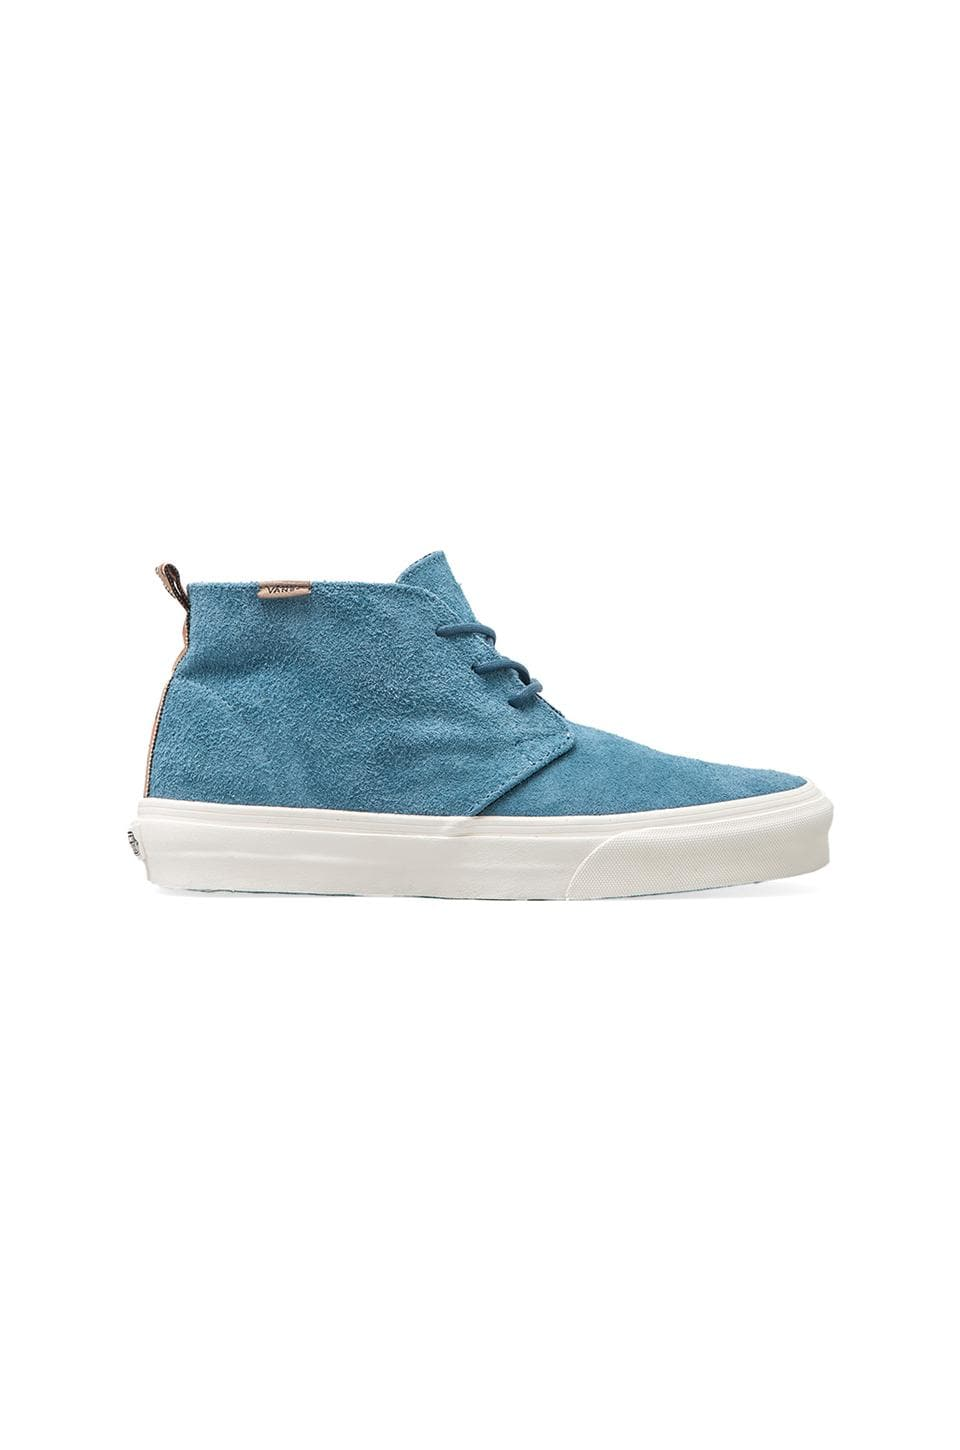 Vans California Chukka Decon in Mallard Blue